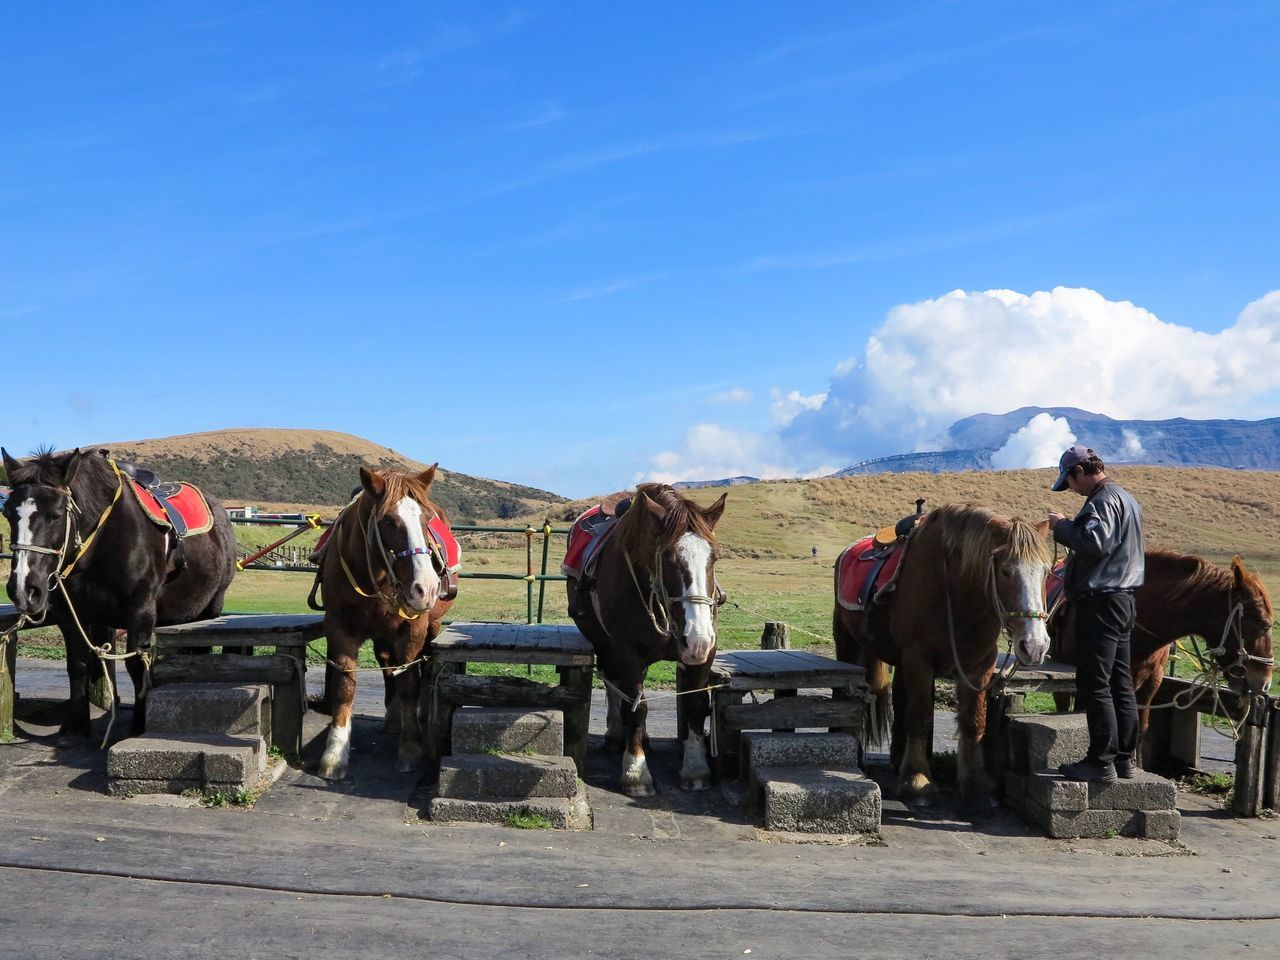 horse, domestic animals, mammal, sky, day, blue, livestock, sunlight, men, outdoors, medium group of people, real people, nature, horse racing, mountain, people